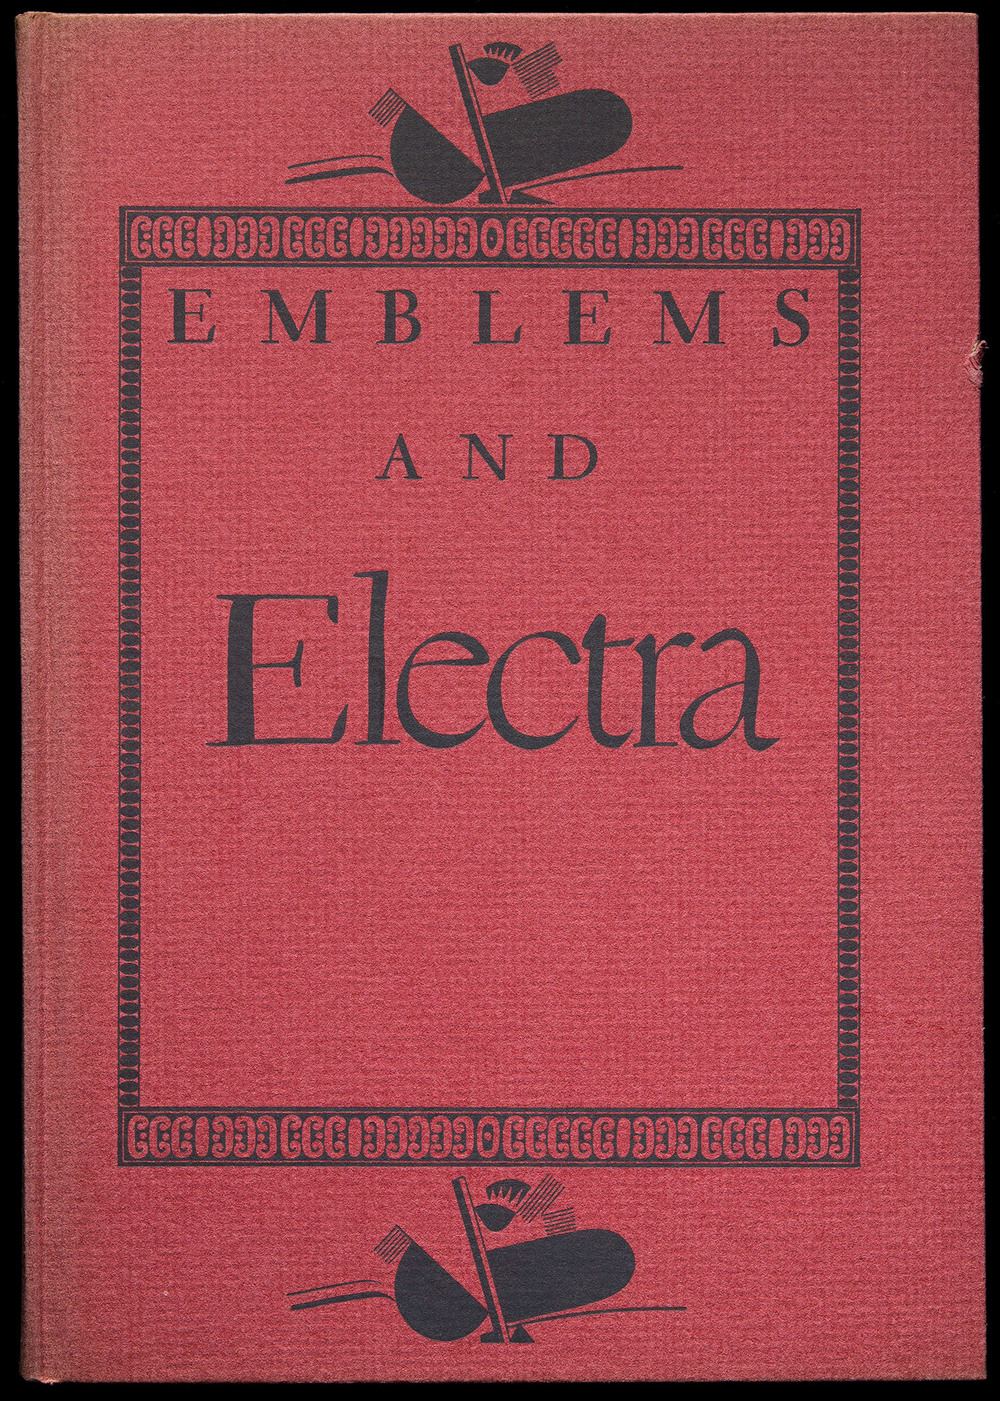 A Bakers Dozen of Emblems and Electra , Mergenthaler Linotype, Brooklyn, 1935, 14 x 20 cm